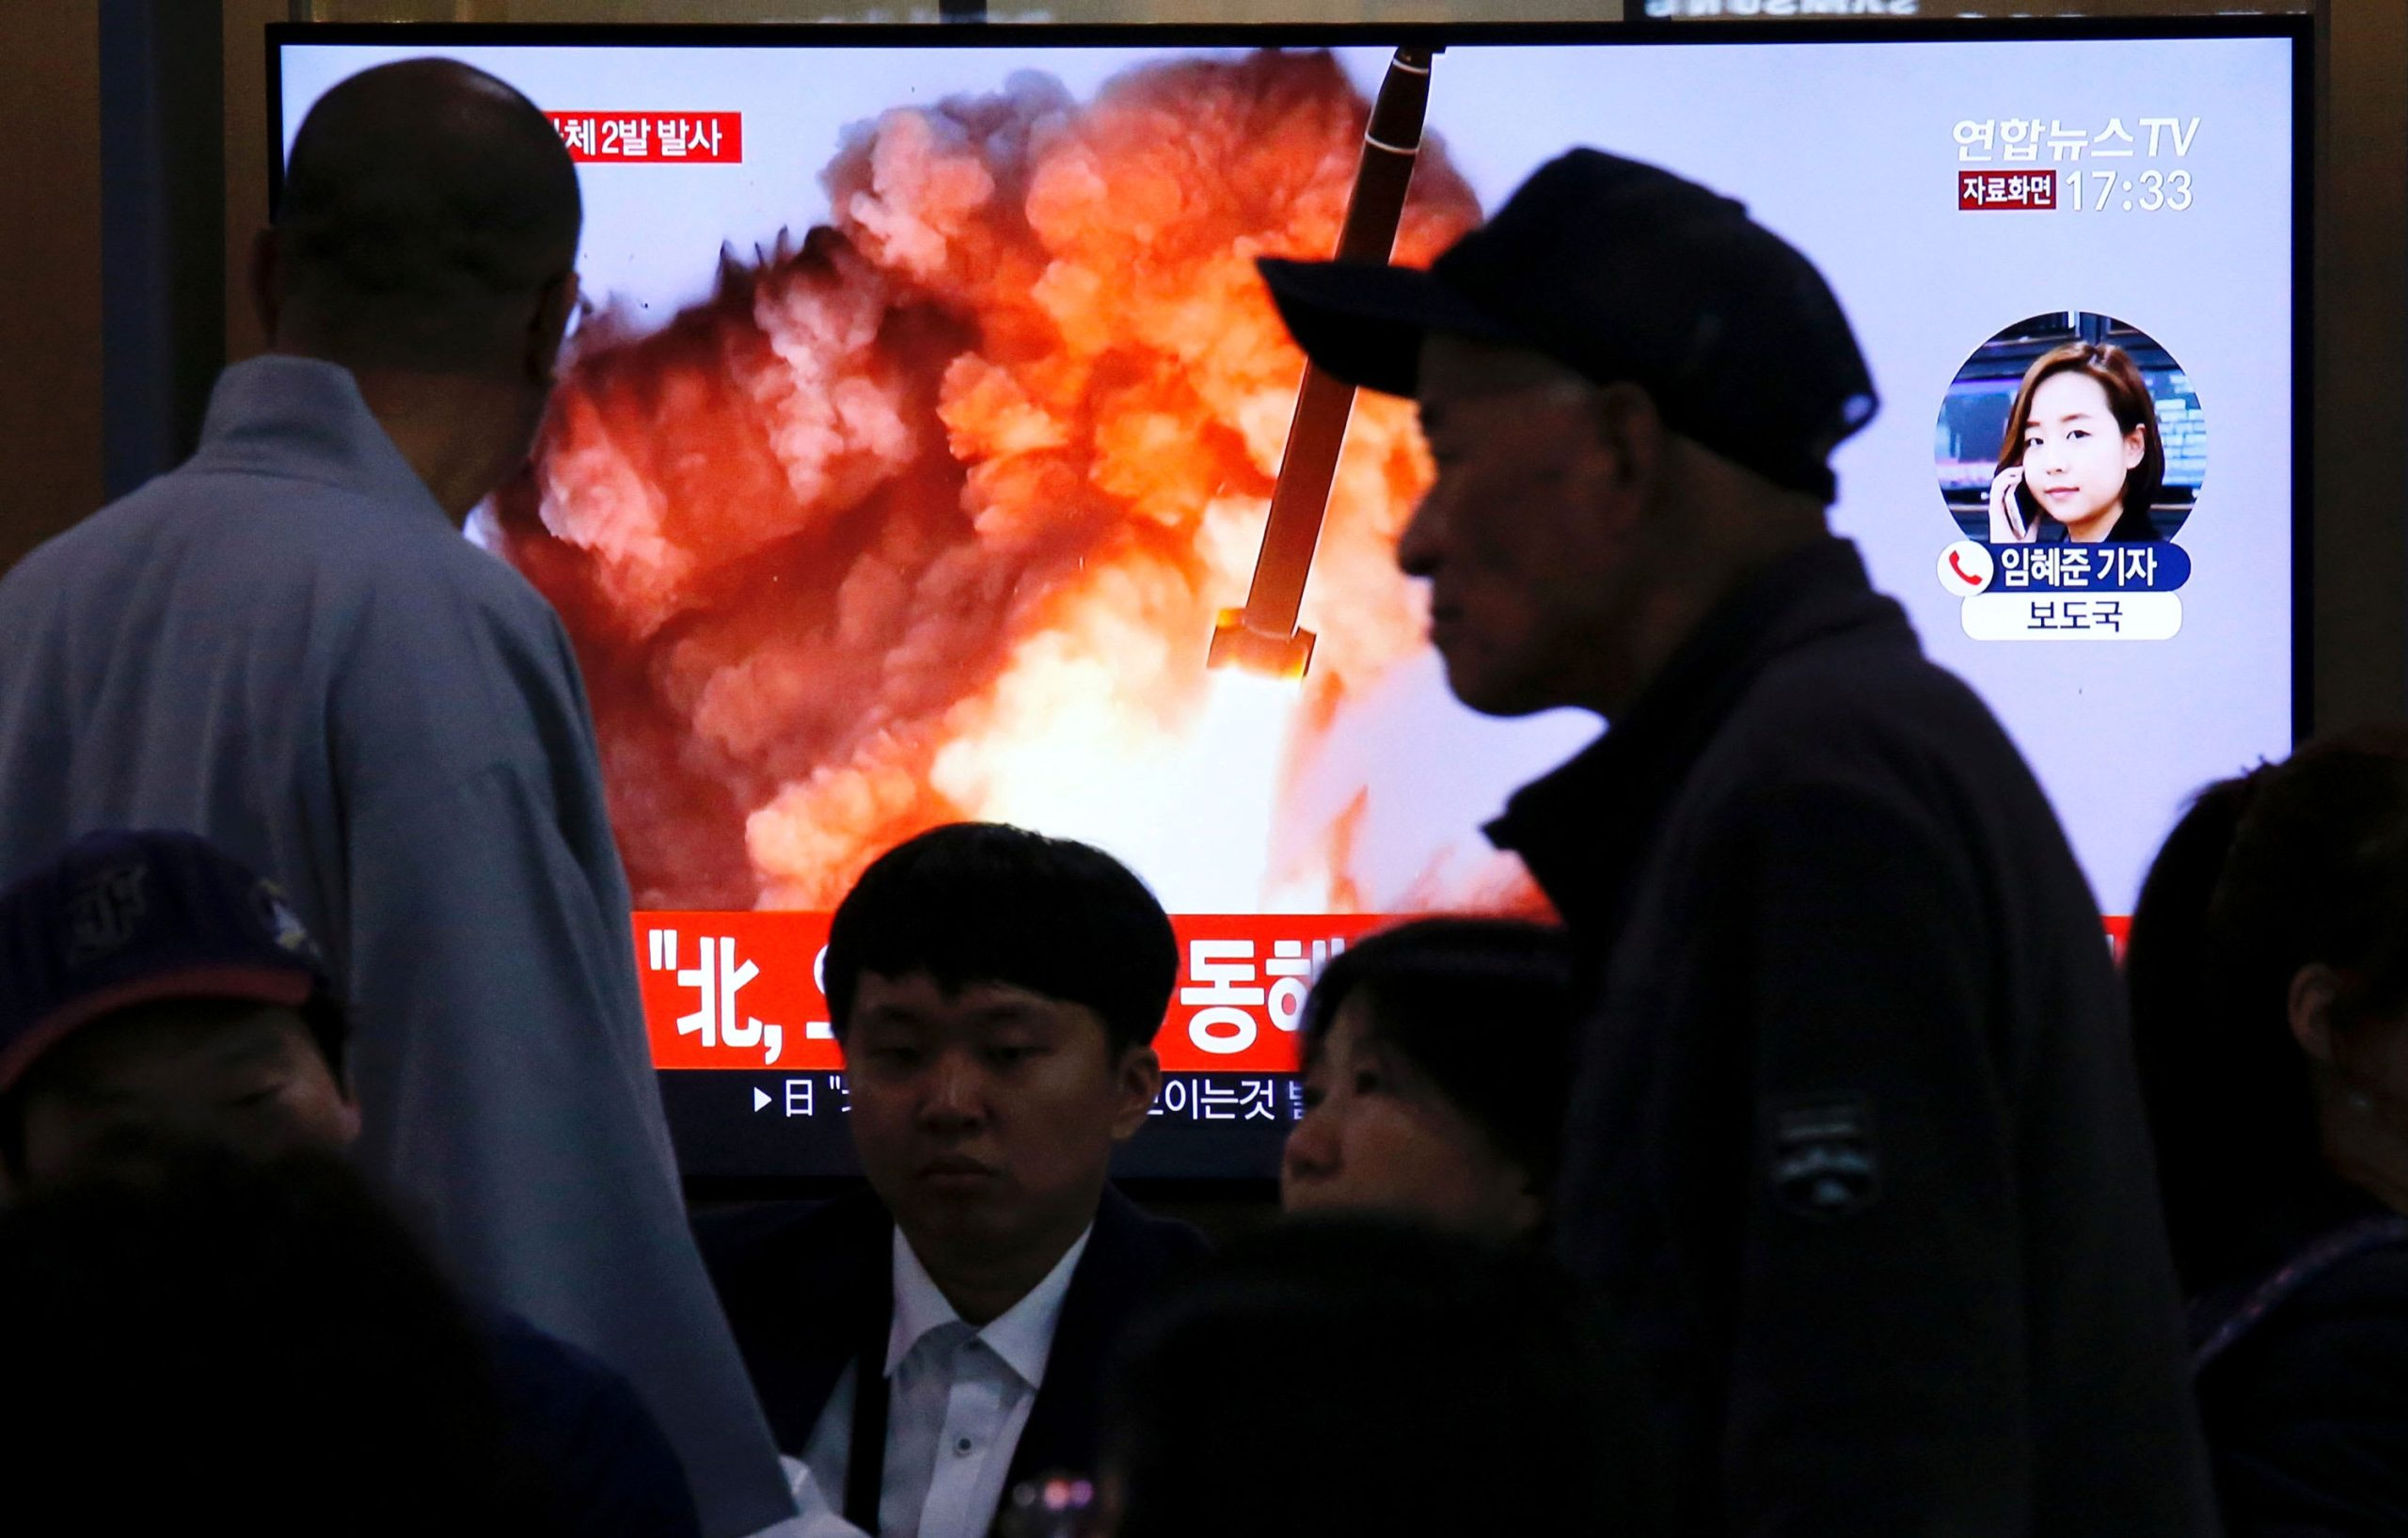 Political News: North Korea fires unidentified projectile, South Korea military says – CNBC